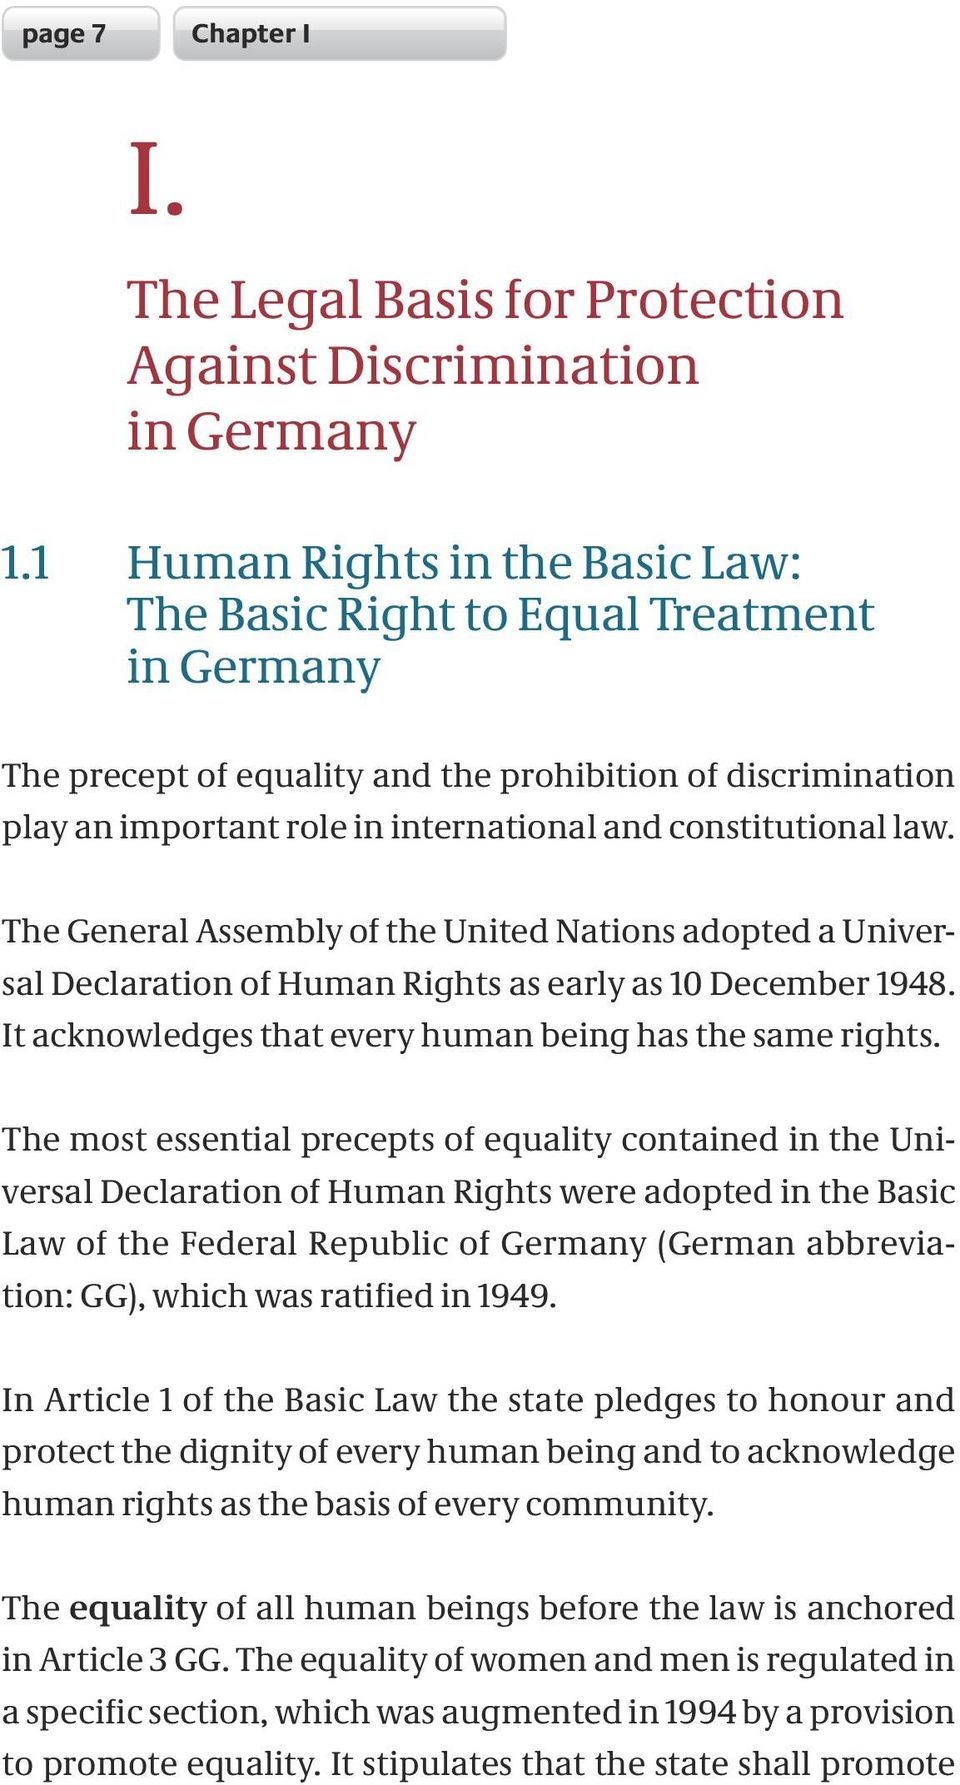 law. The General Assembly of the United Nations adopted a Universal Declaration of Human Rights as early as 10 December 1948. It acknowledges that every human being has the same rights.